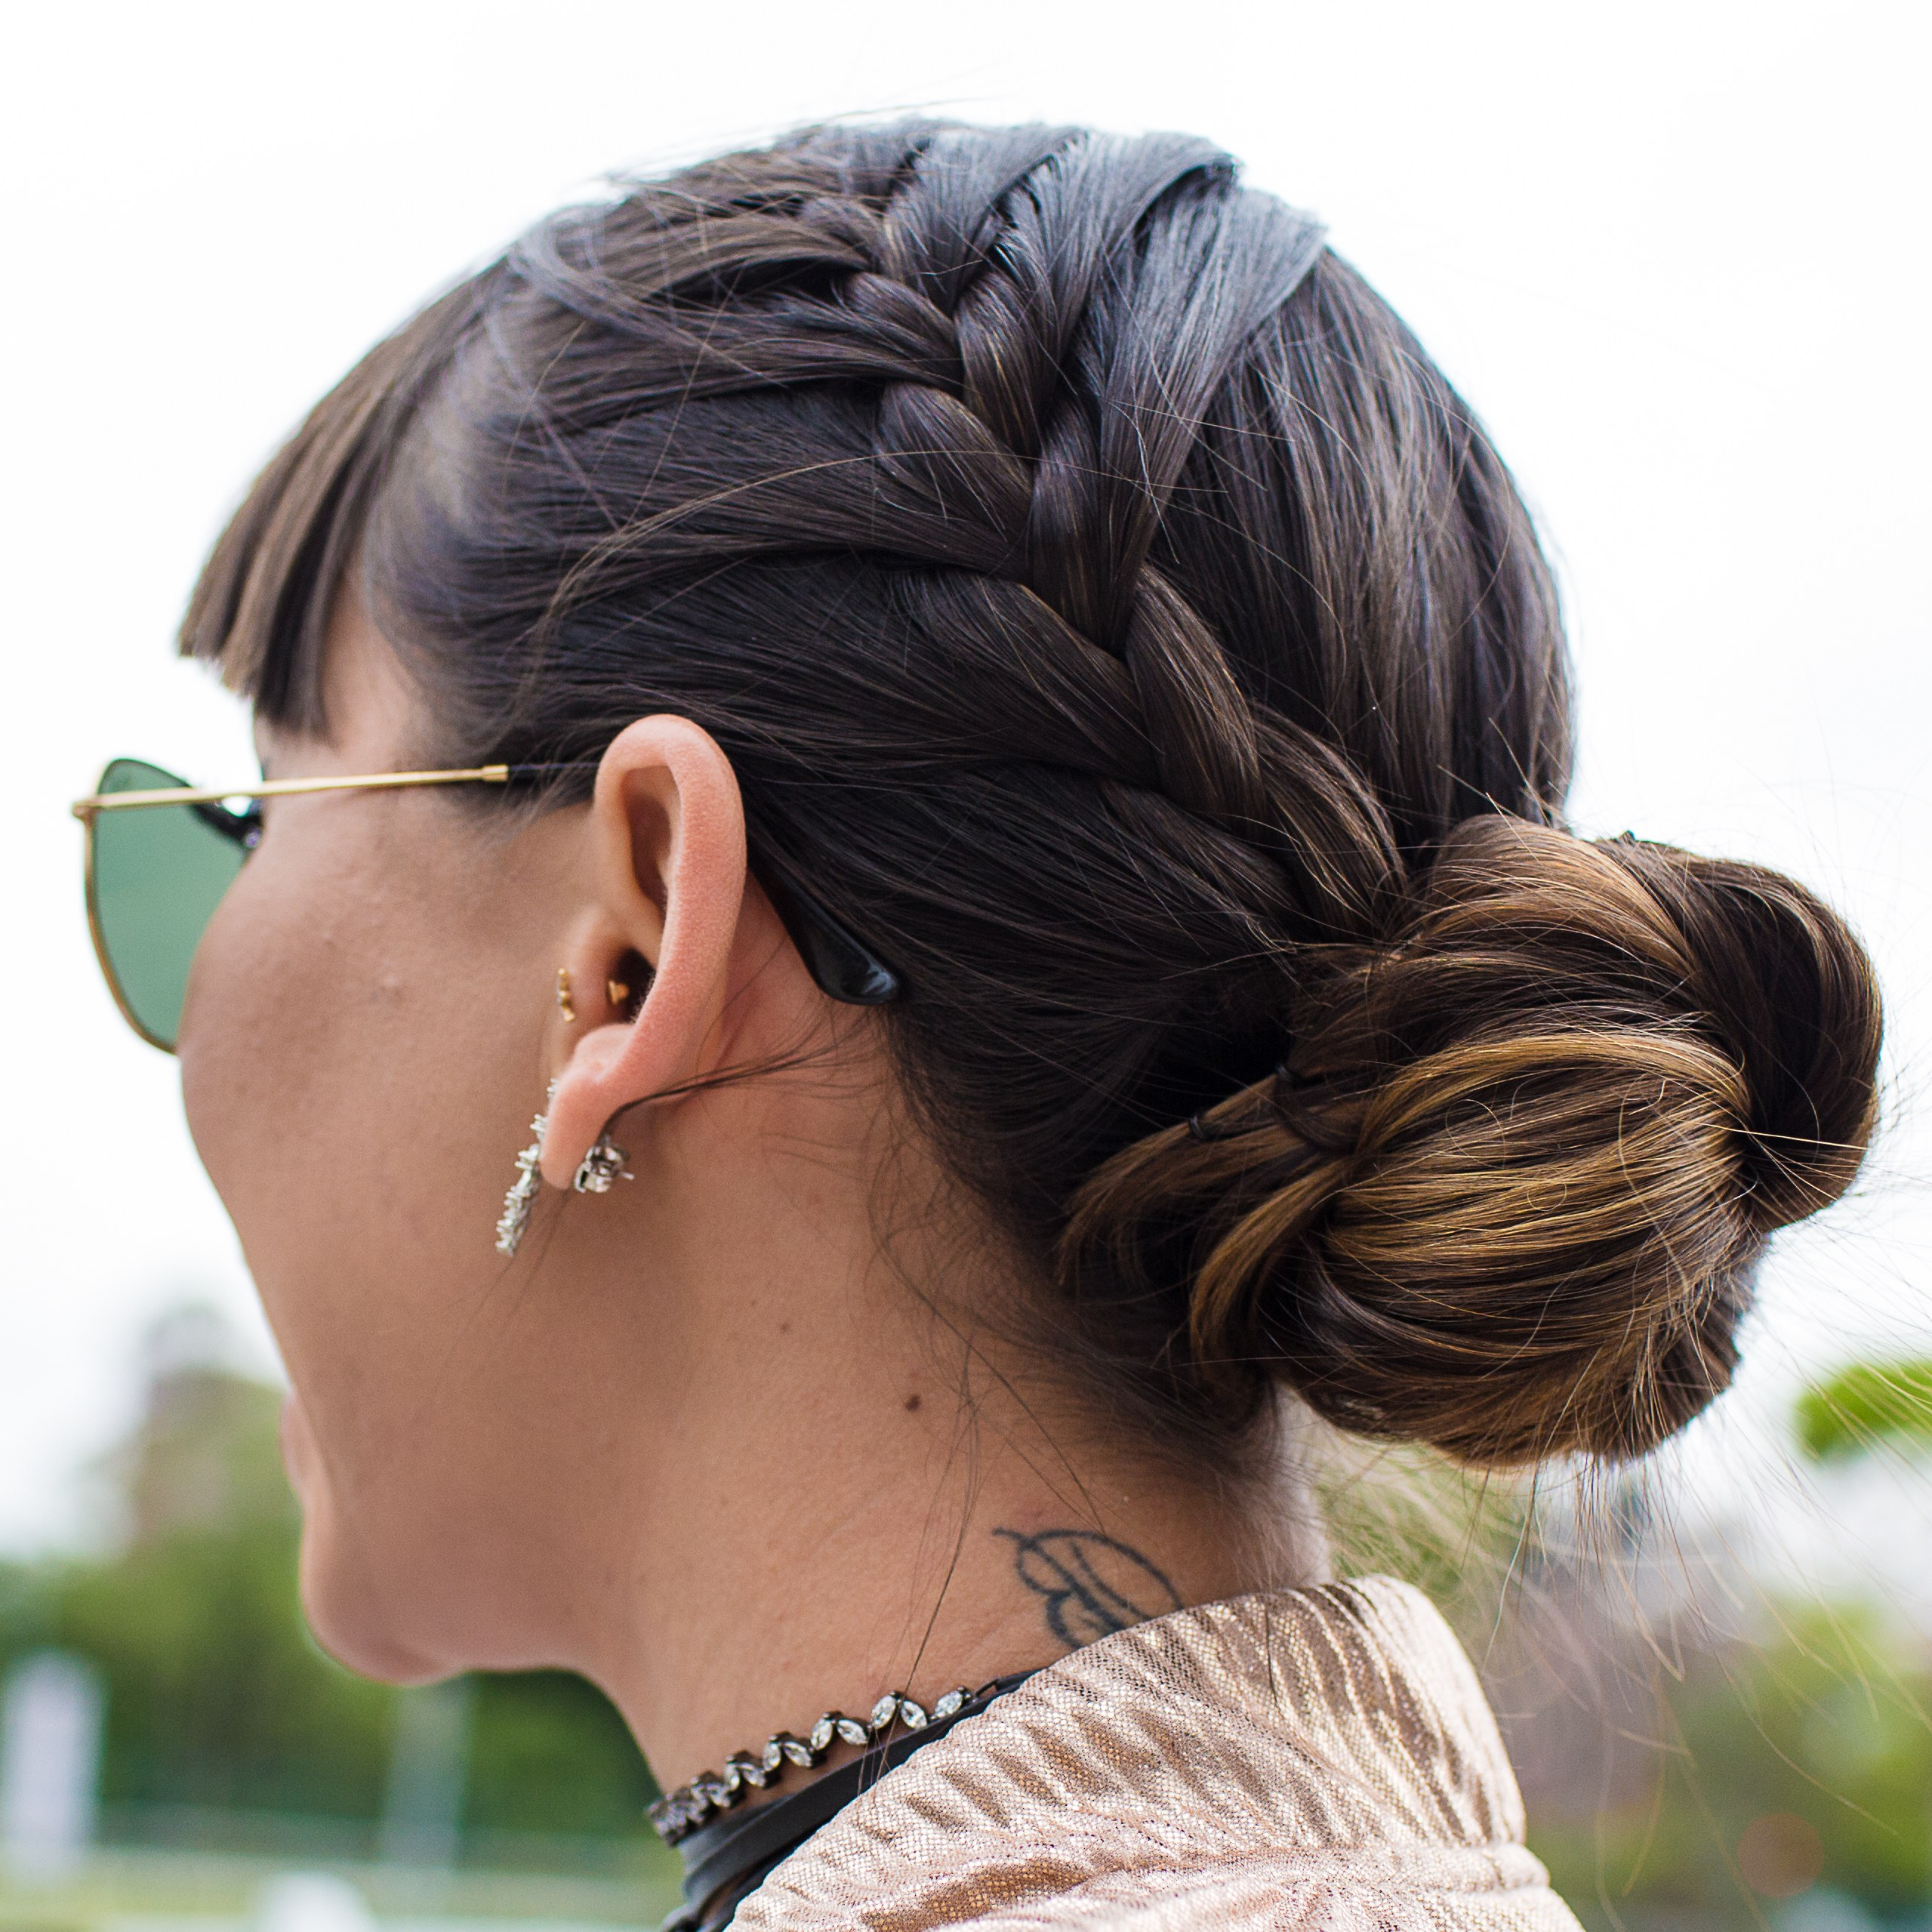 Popular Topknot Hairstyles With Mini Braid With How To Braid Hair – 10 Tutorials You Can Do Yourself (View 10 of 20)